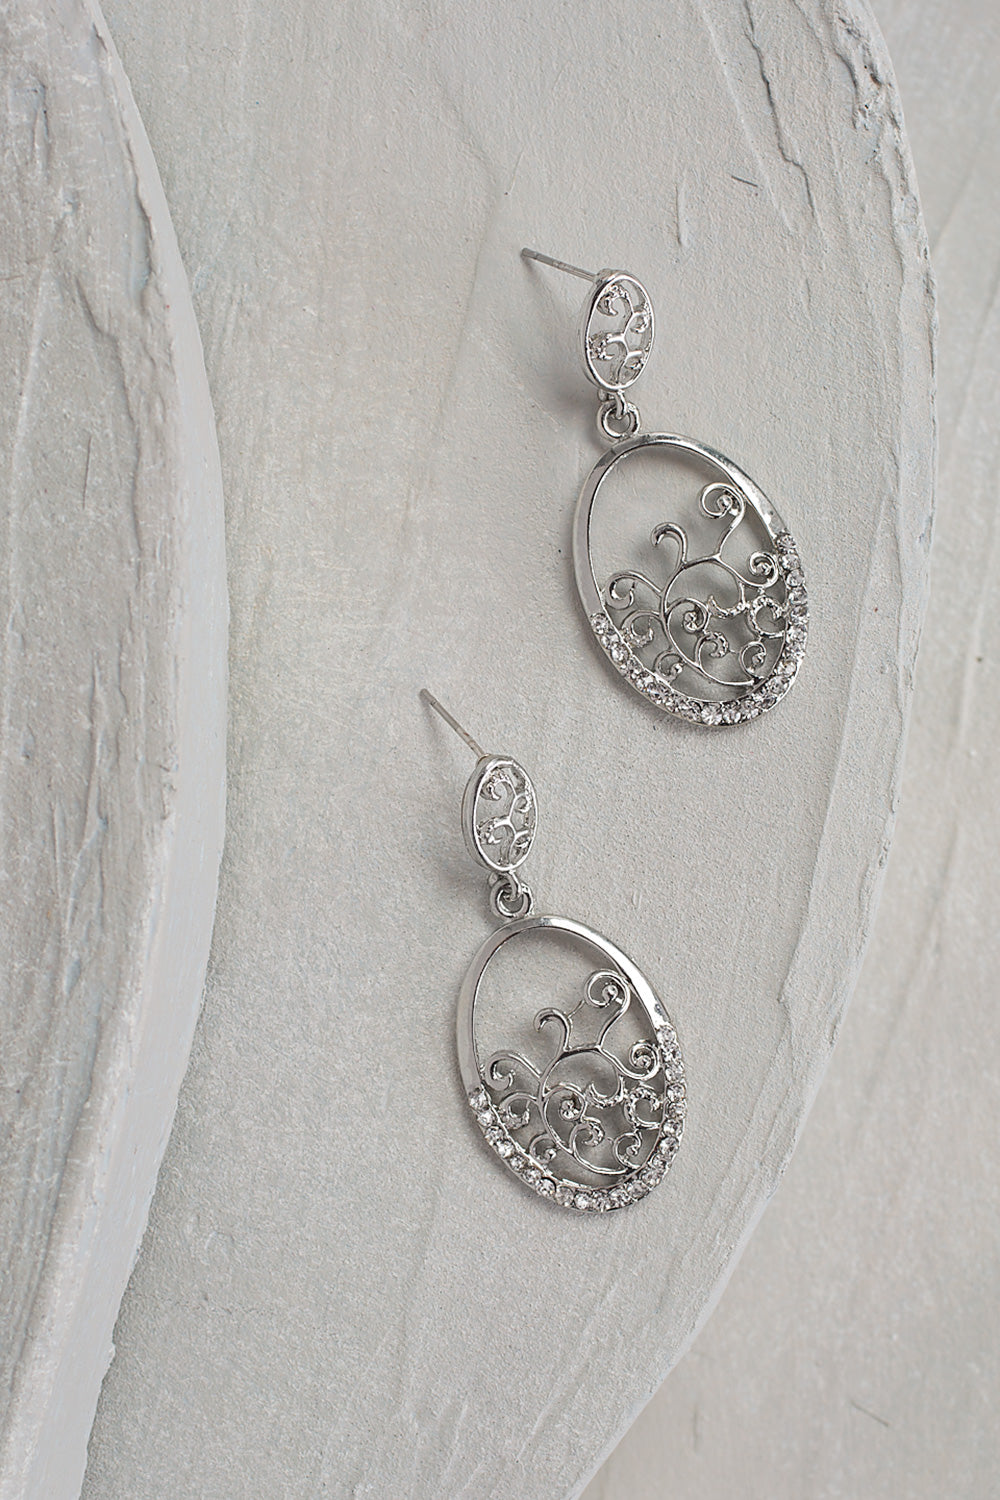 Type 2 Dressed Up Swirl Earrings